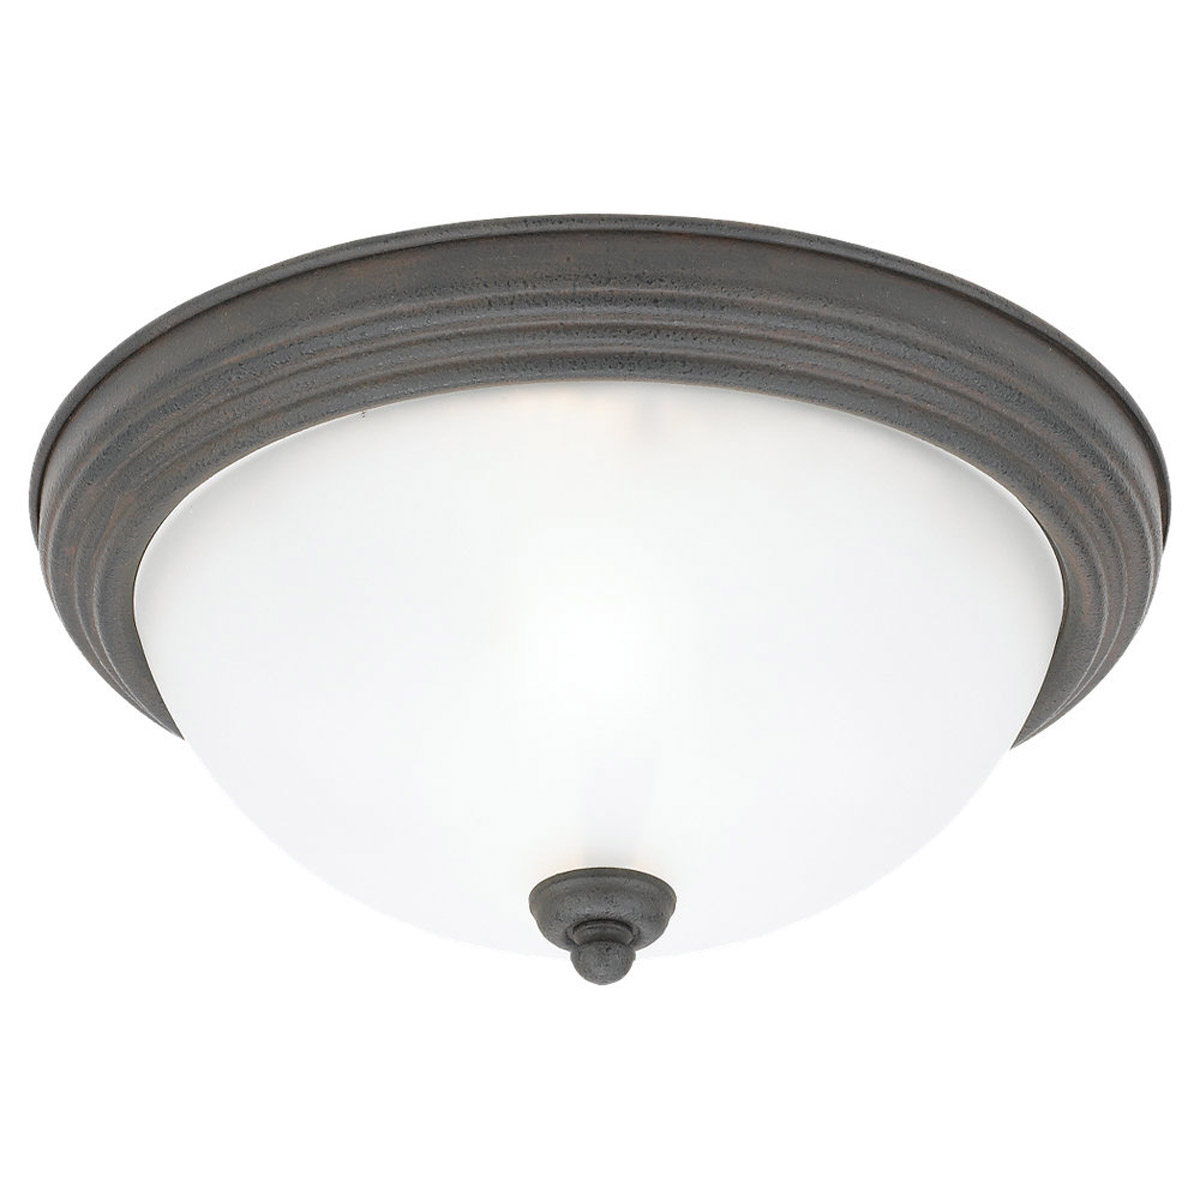 Sea Gull Lighting Pemberton 2 Light Flush Mount in Peppercorn 77064-799 photo